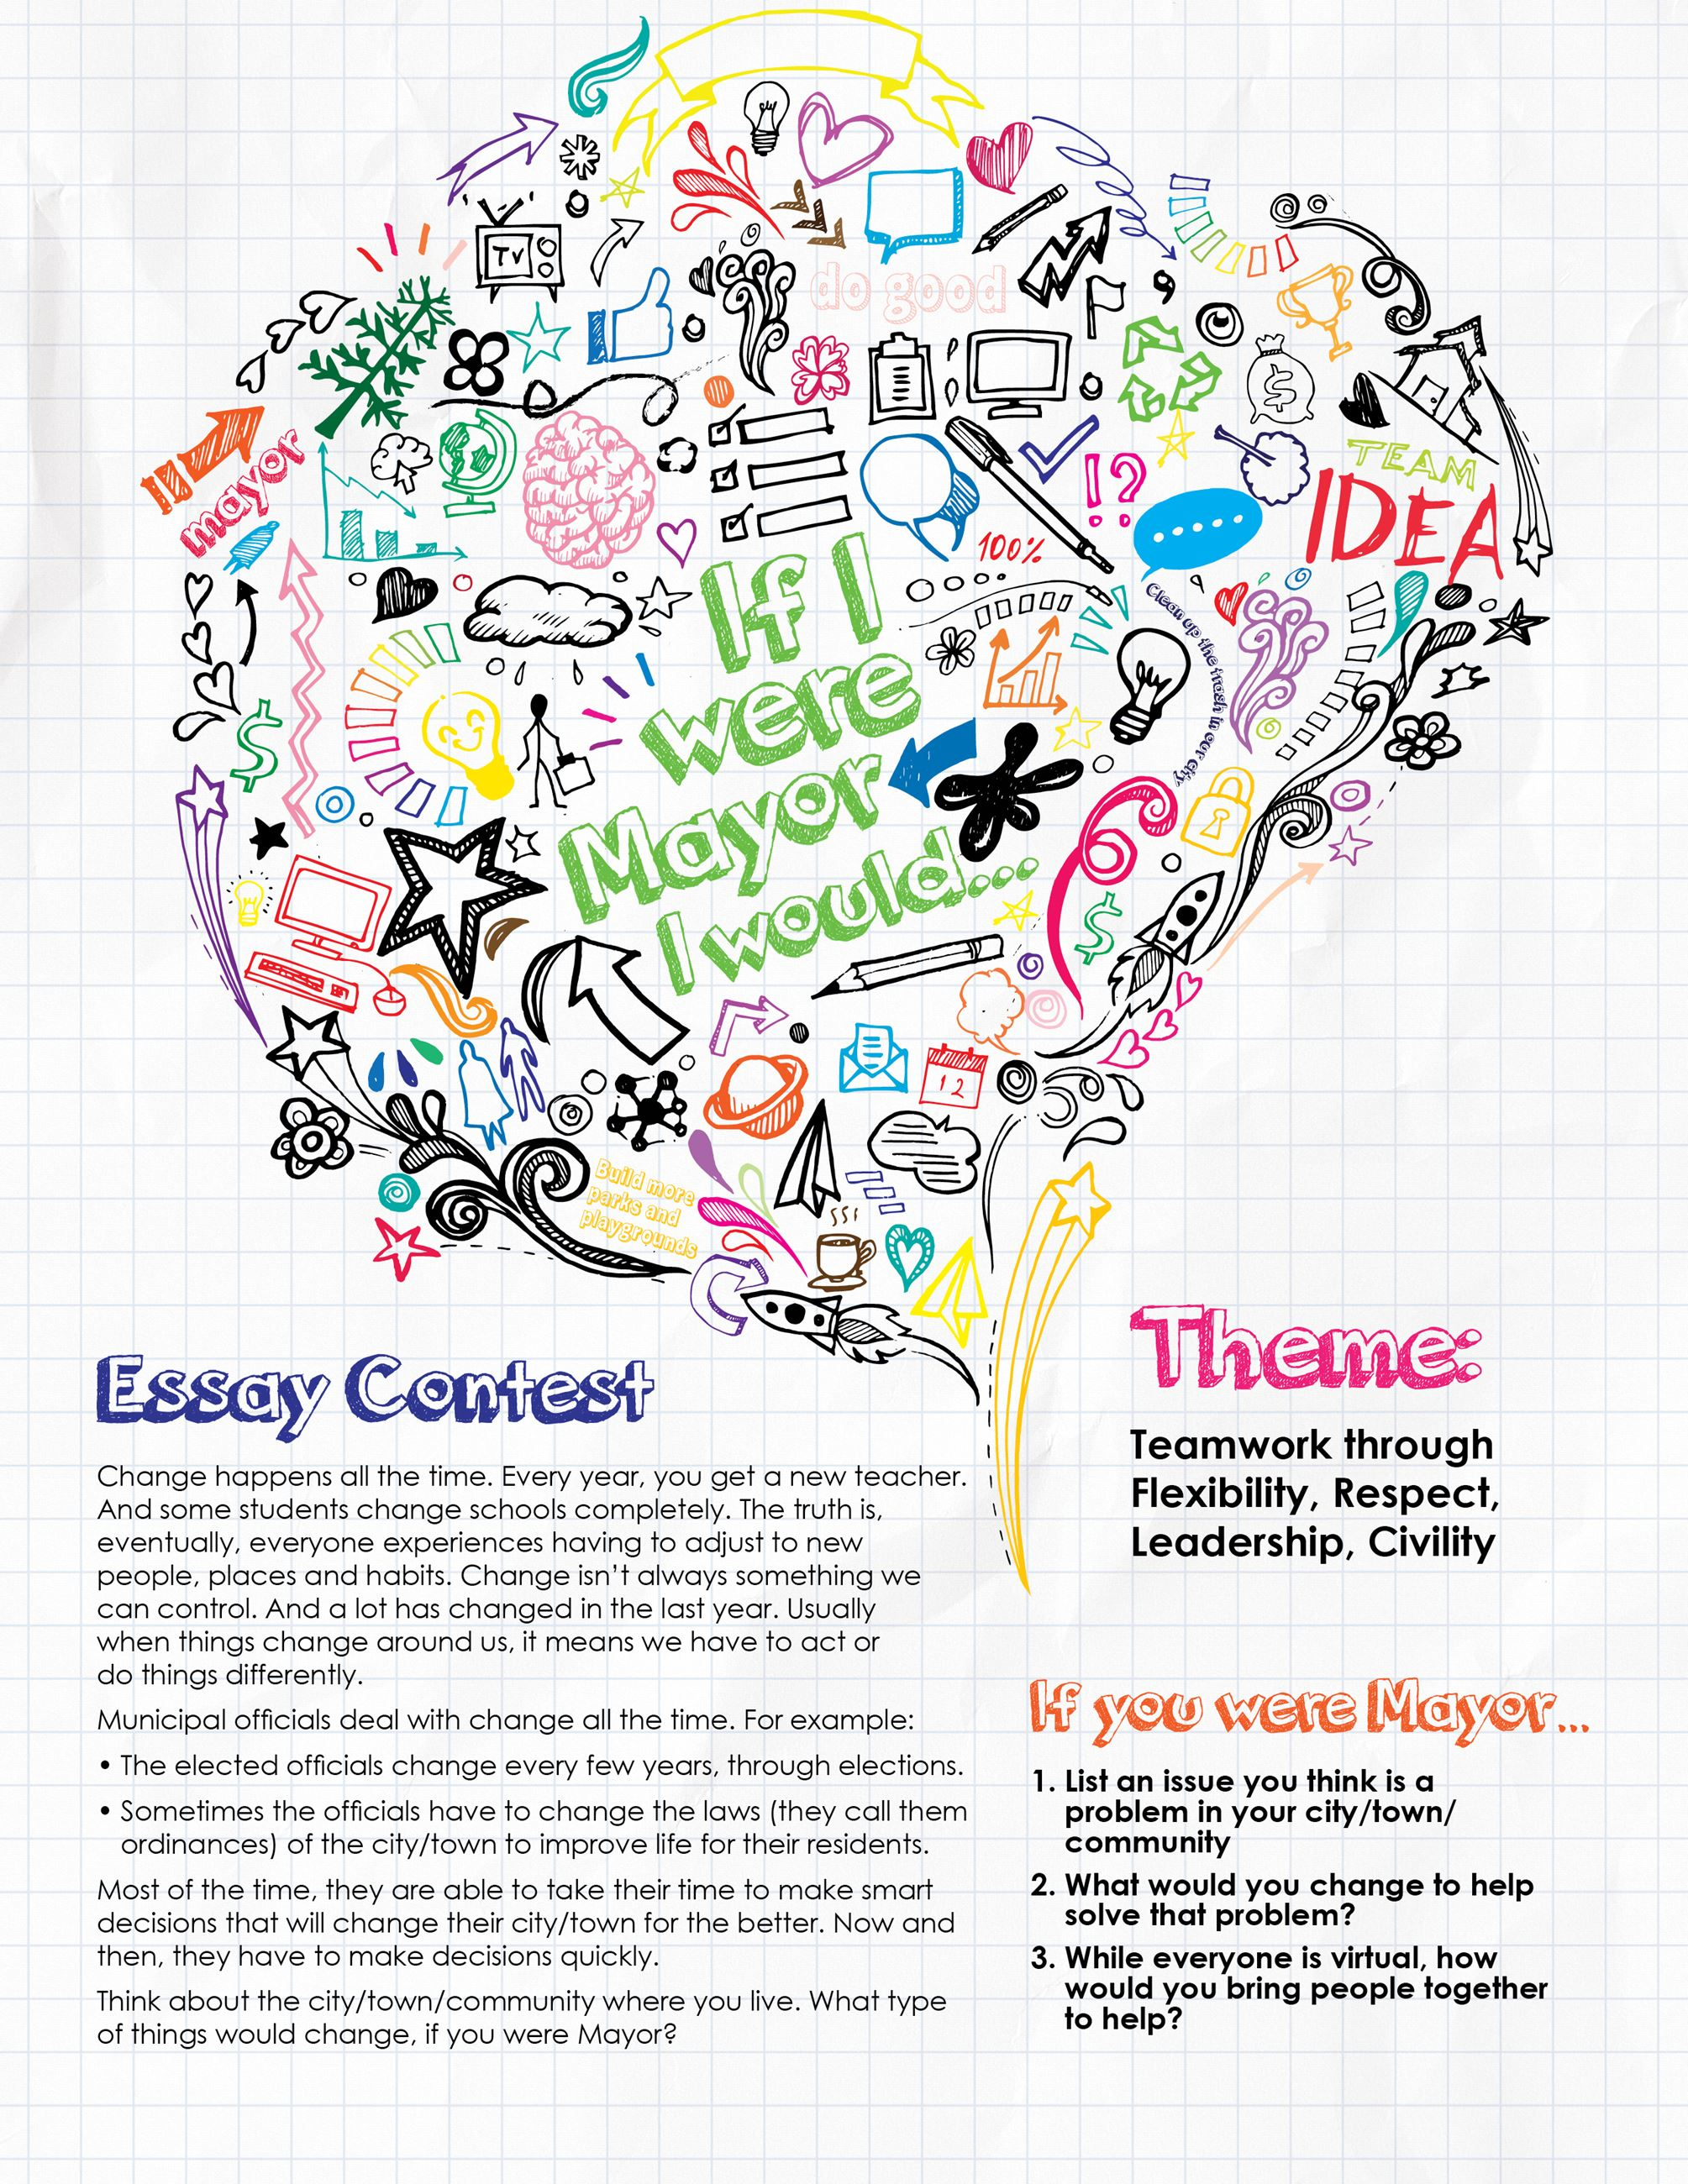 Jpeg of 2021 Essay Contest questions and theme